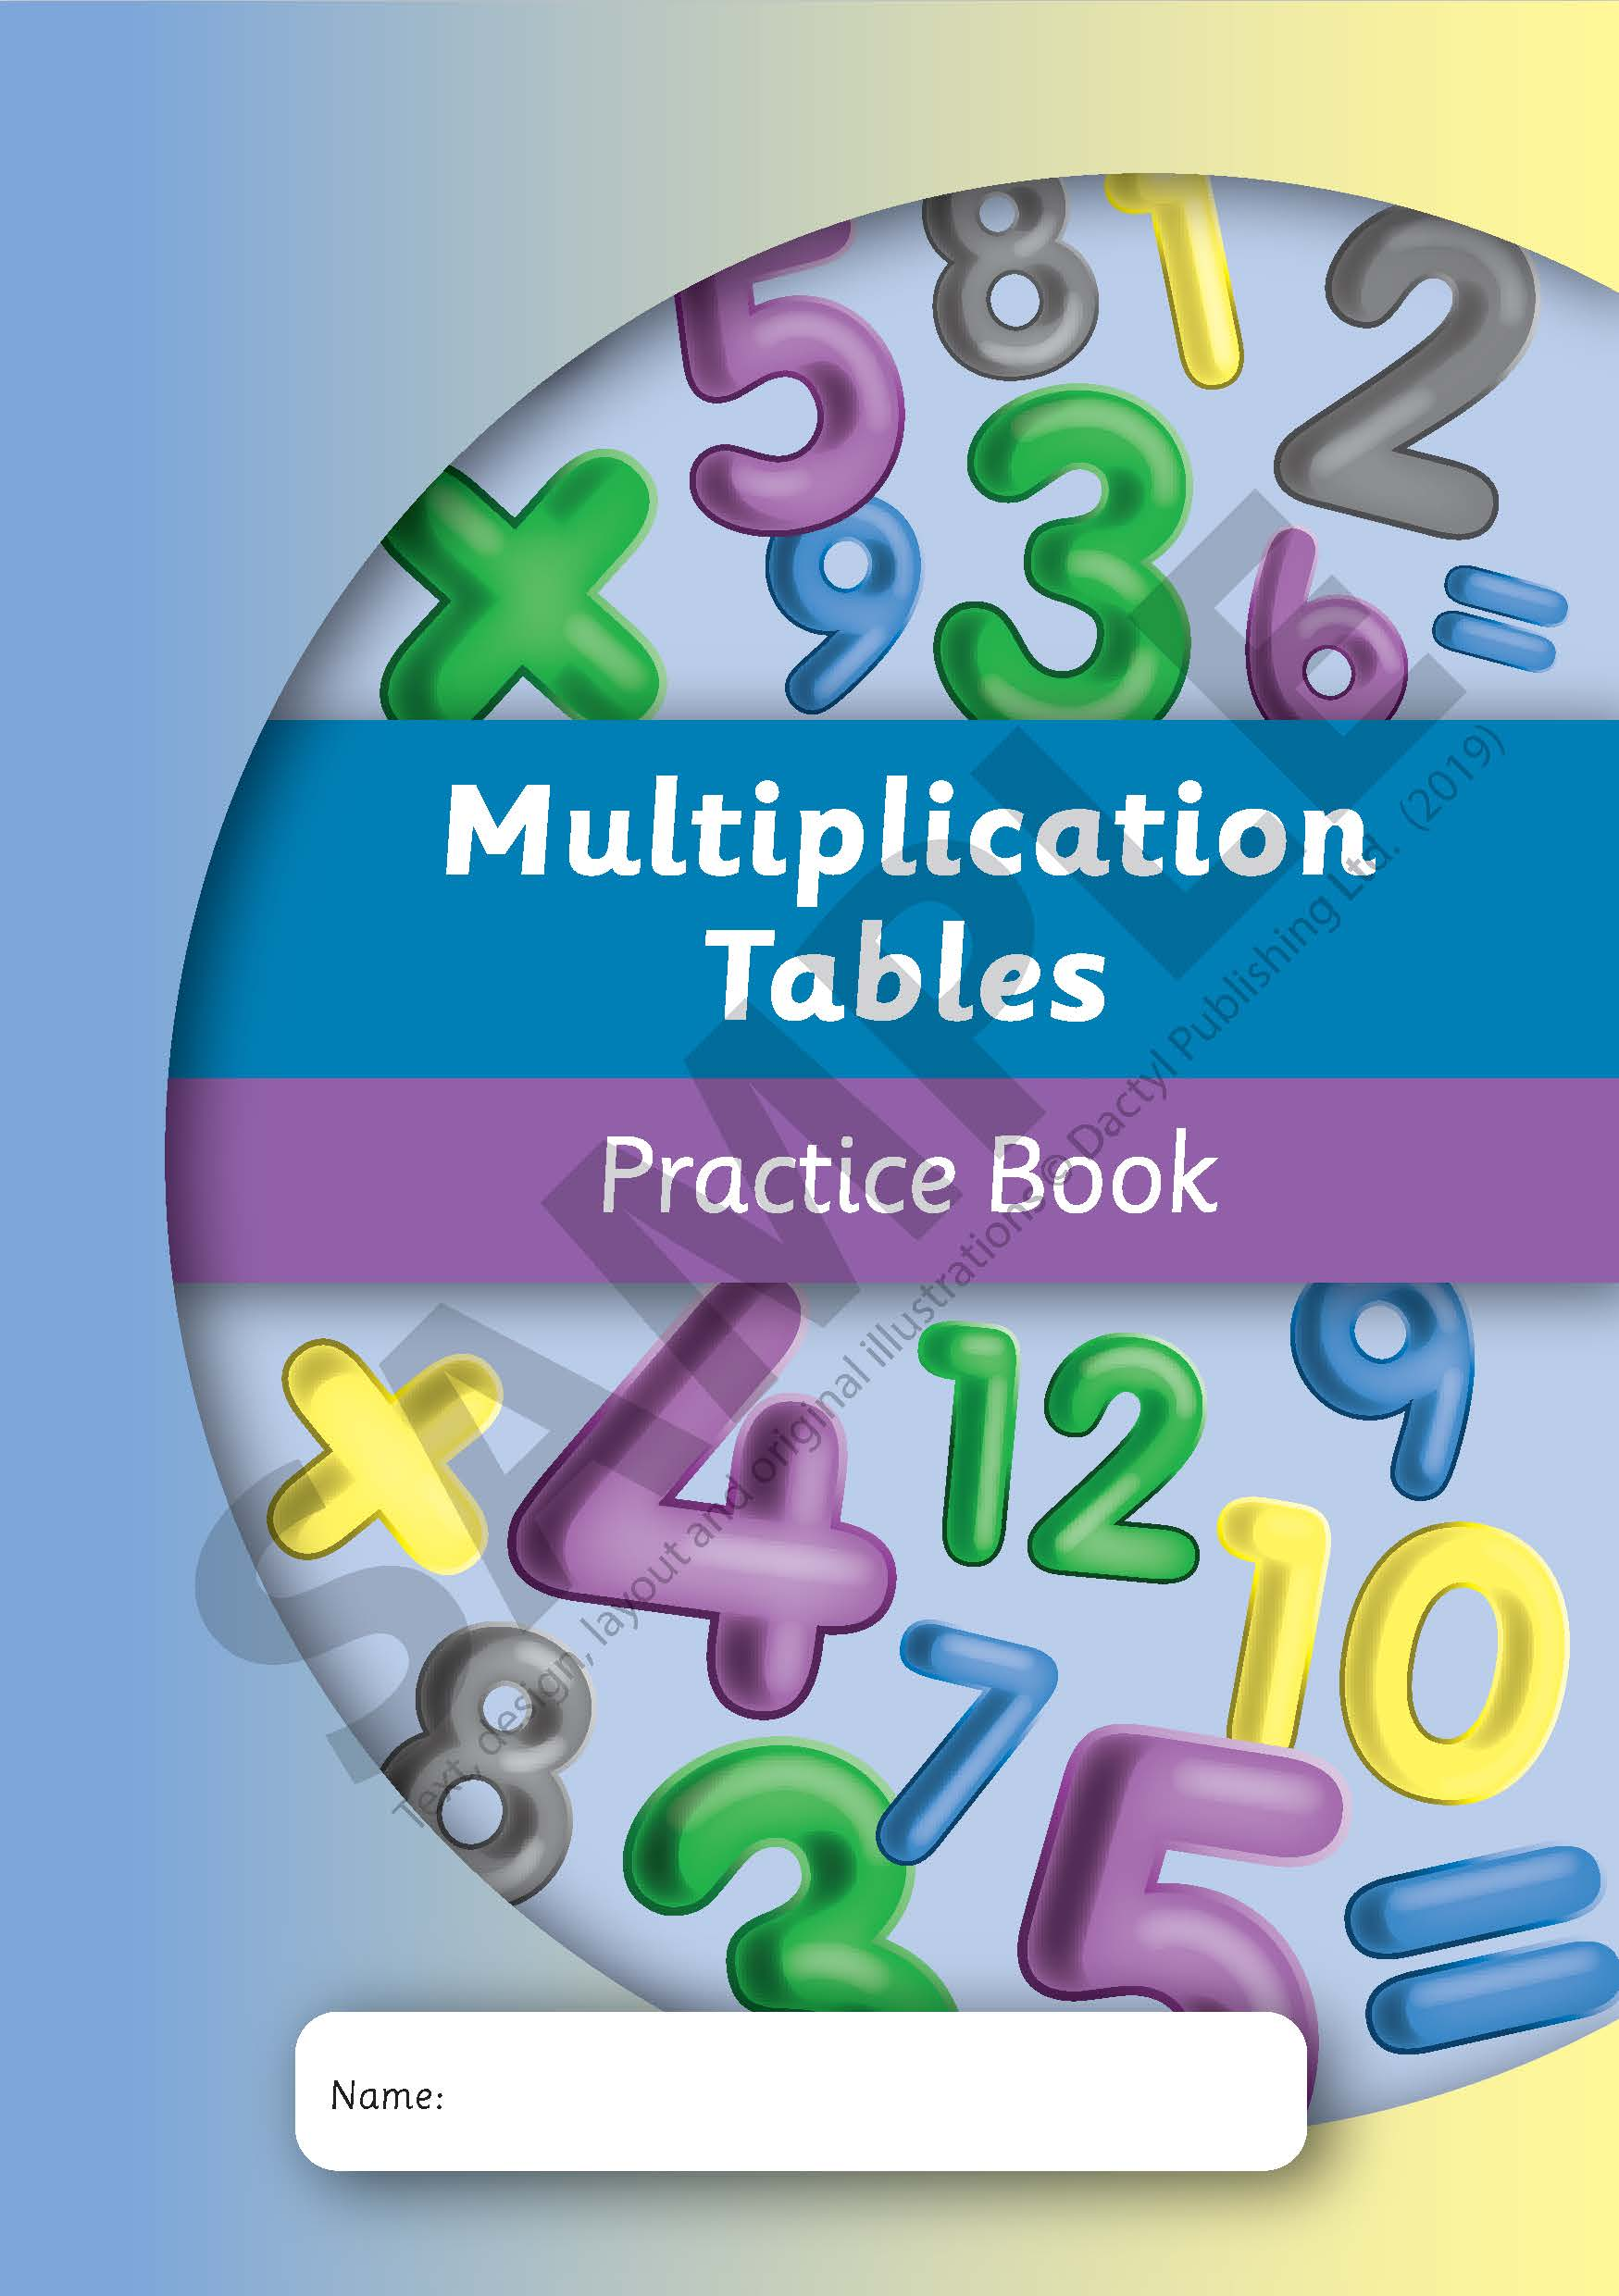 Multiplication Tables Practice Book   Dactyl Publishing